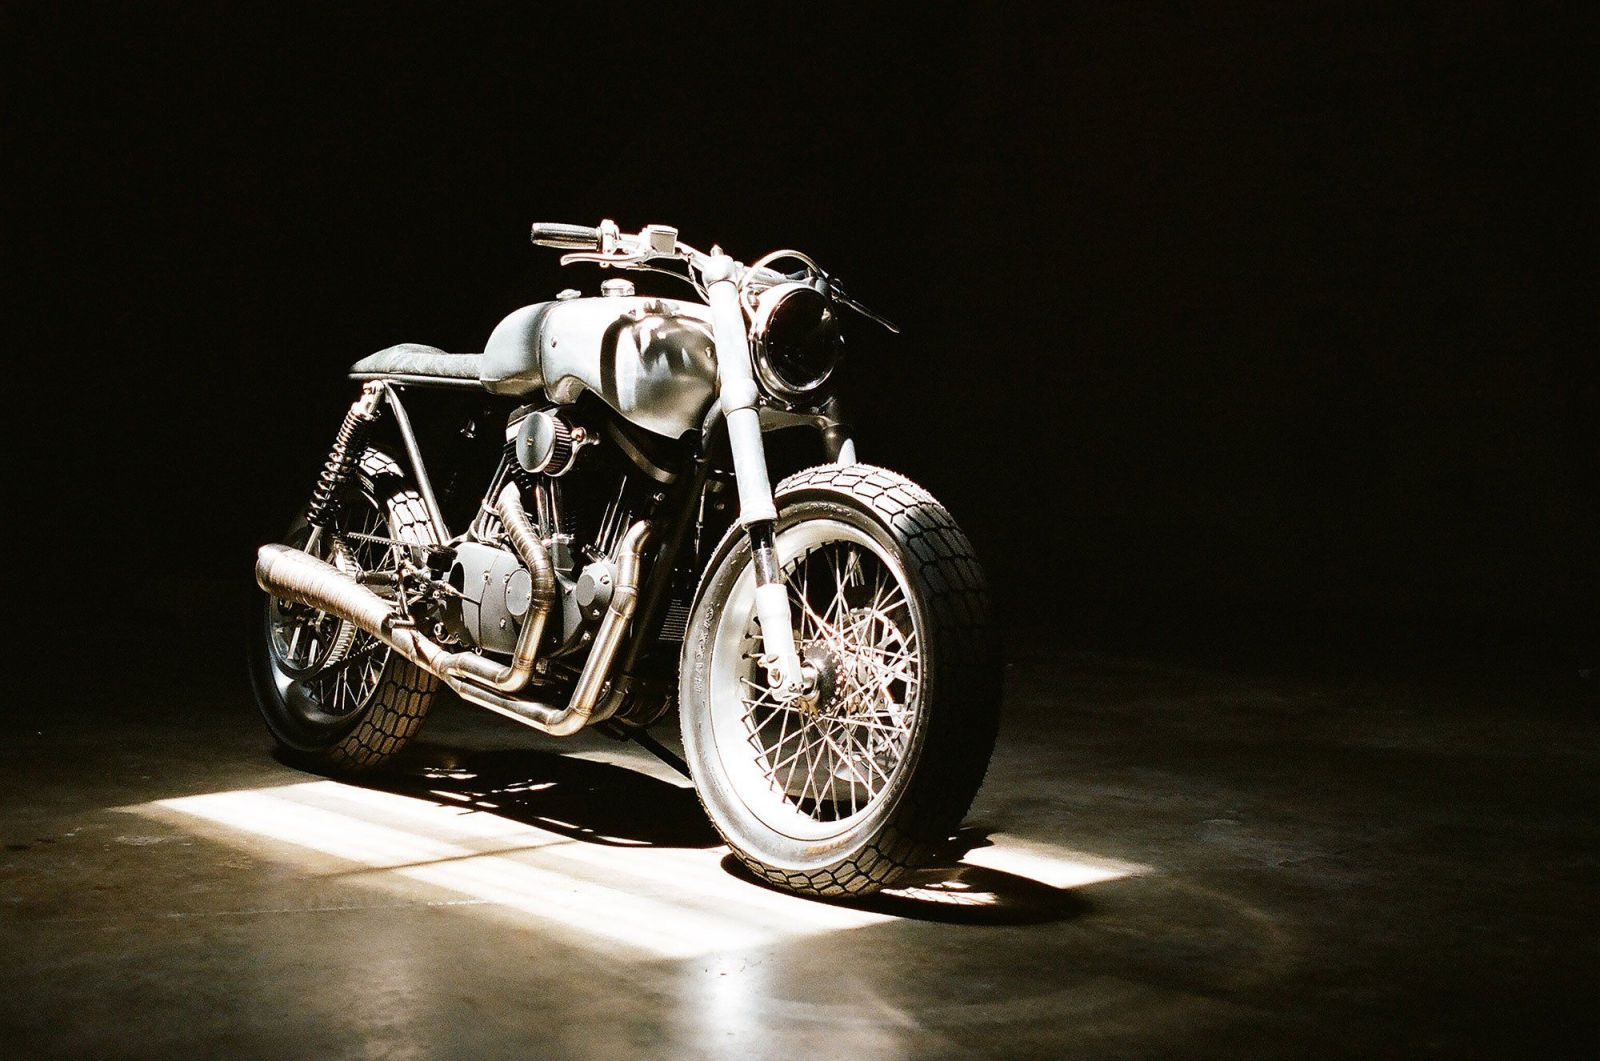 The Hardley custom Harley-Davidson by Revival Cycles